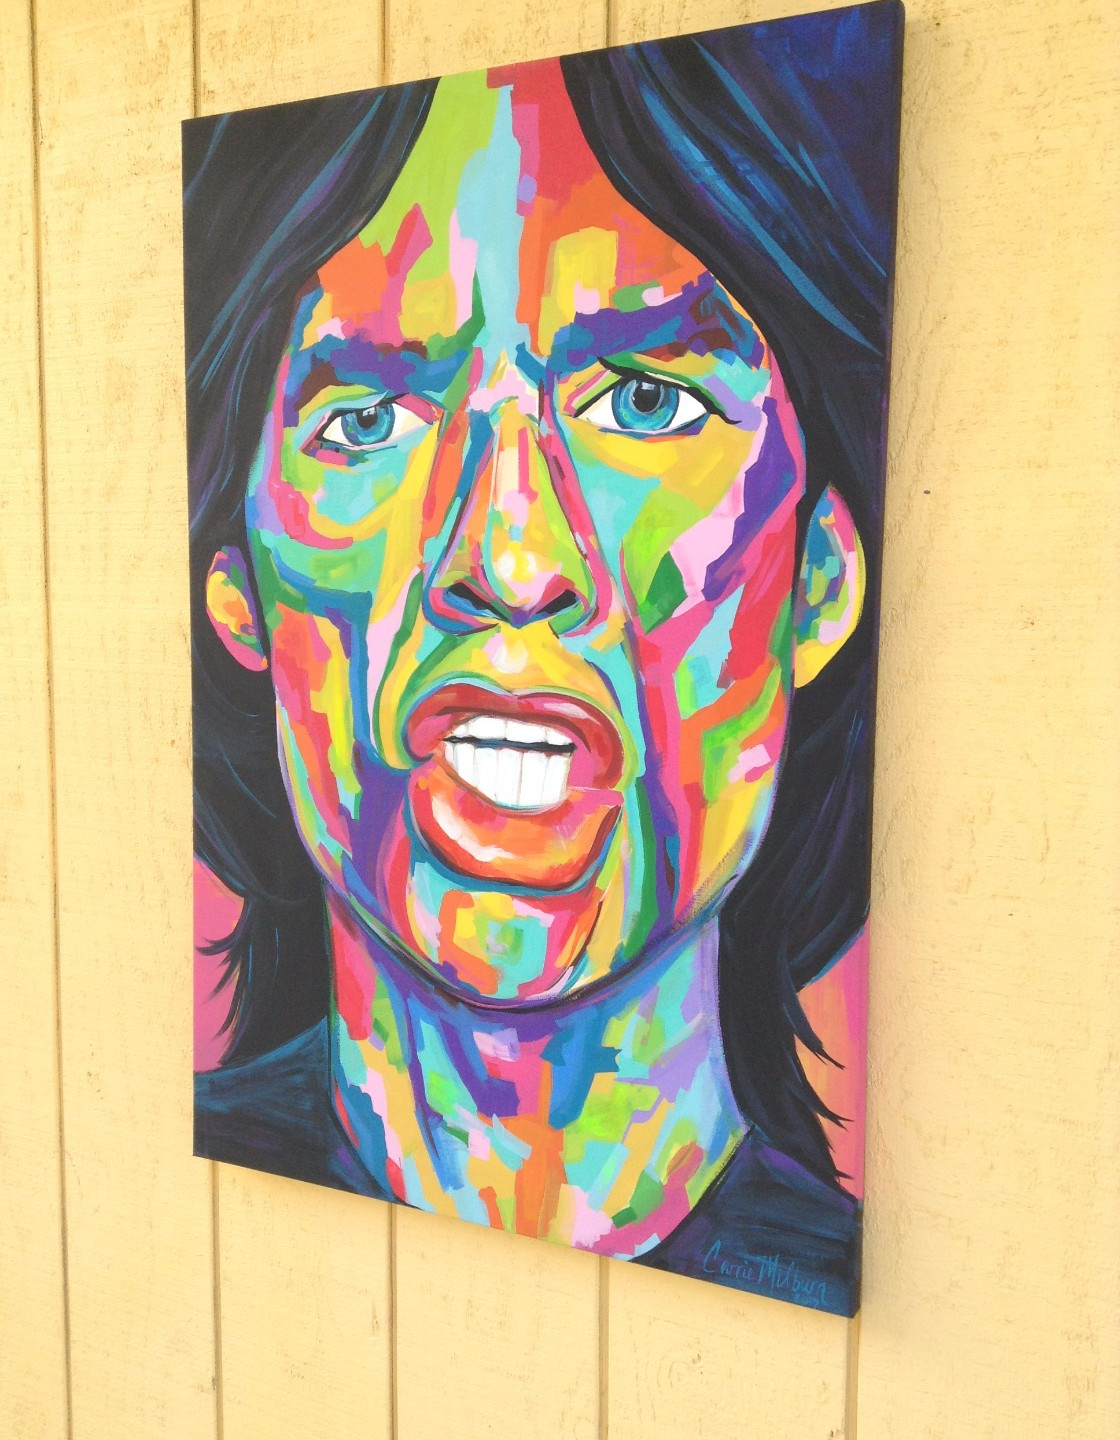 Original Mick Jagger painting by Snohomish artist Carrie Milburn